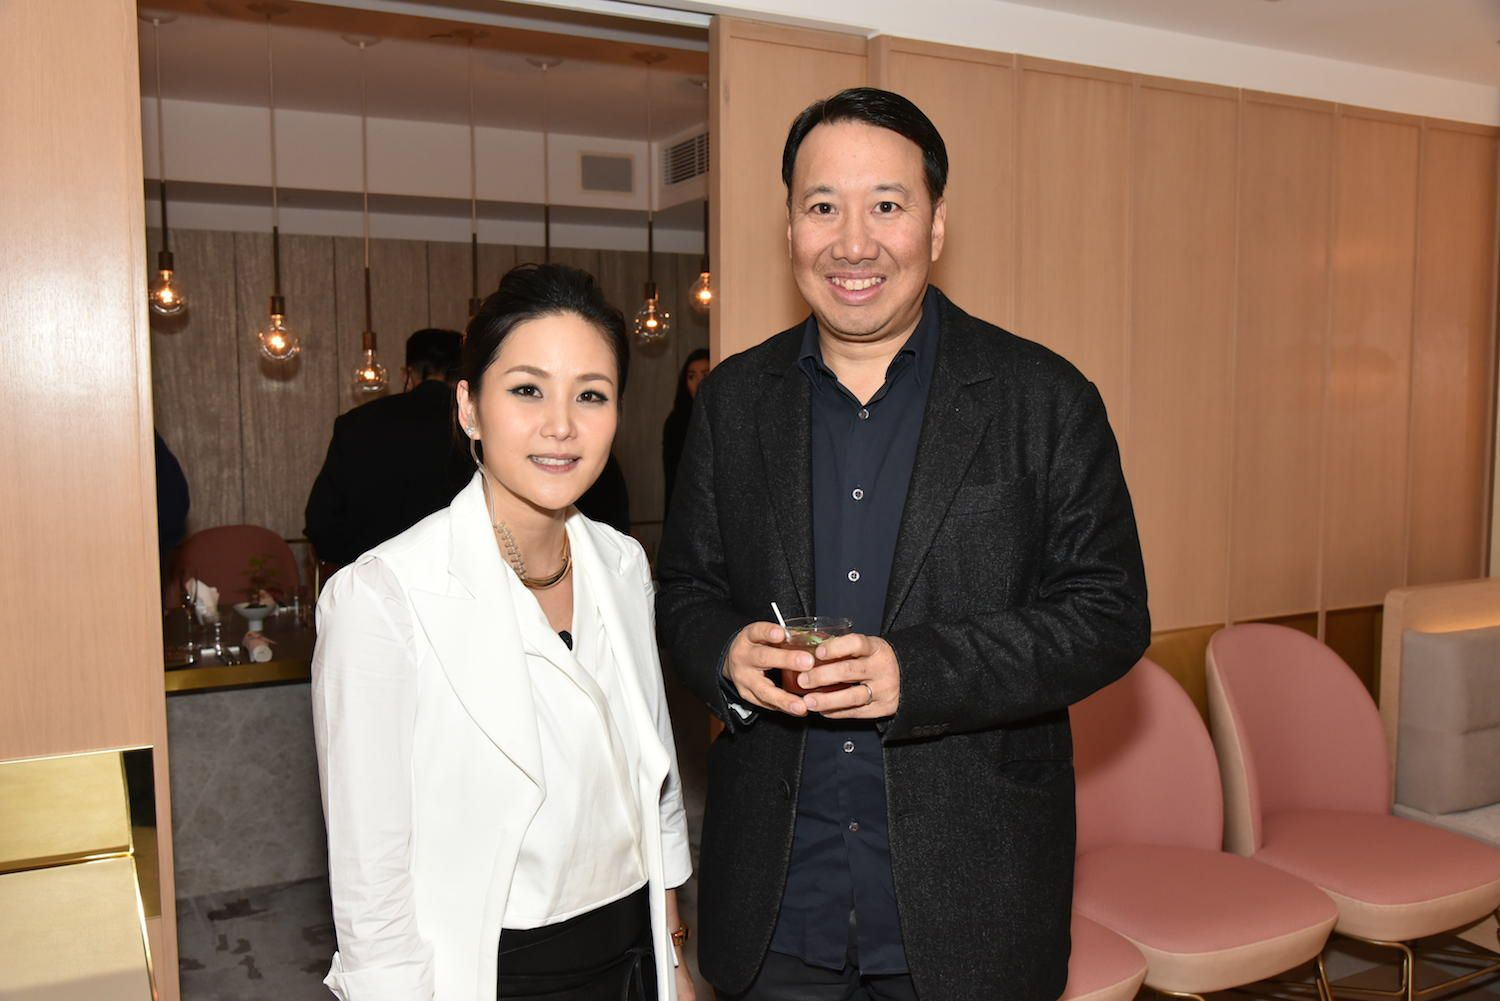 Vicky Lau And Derrick Fung